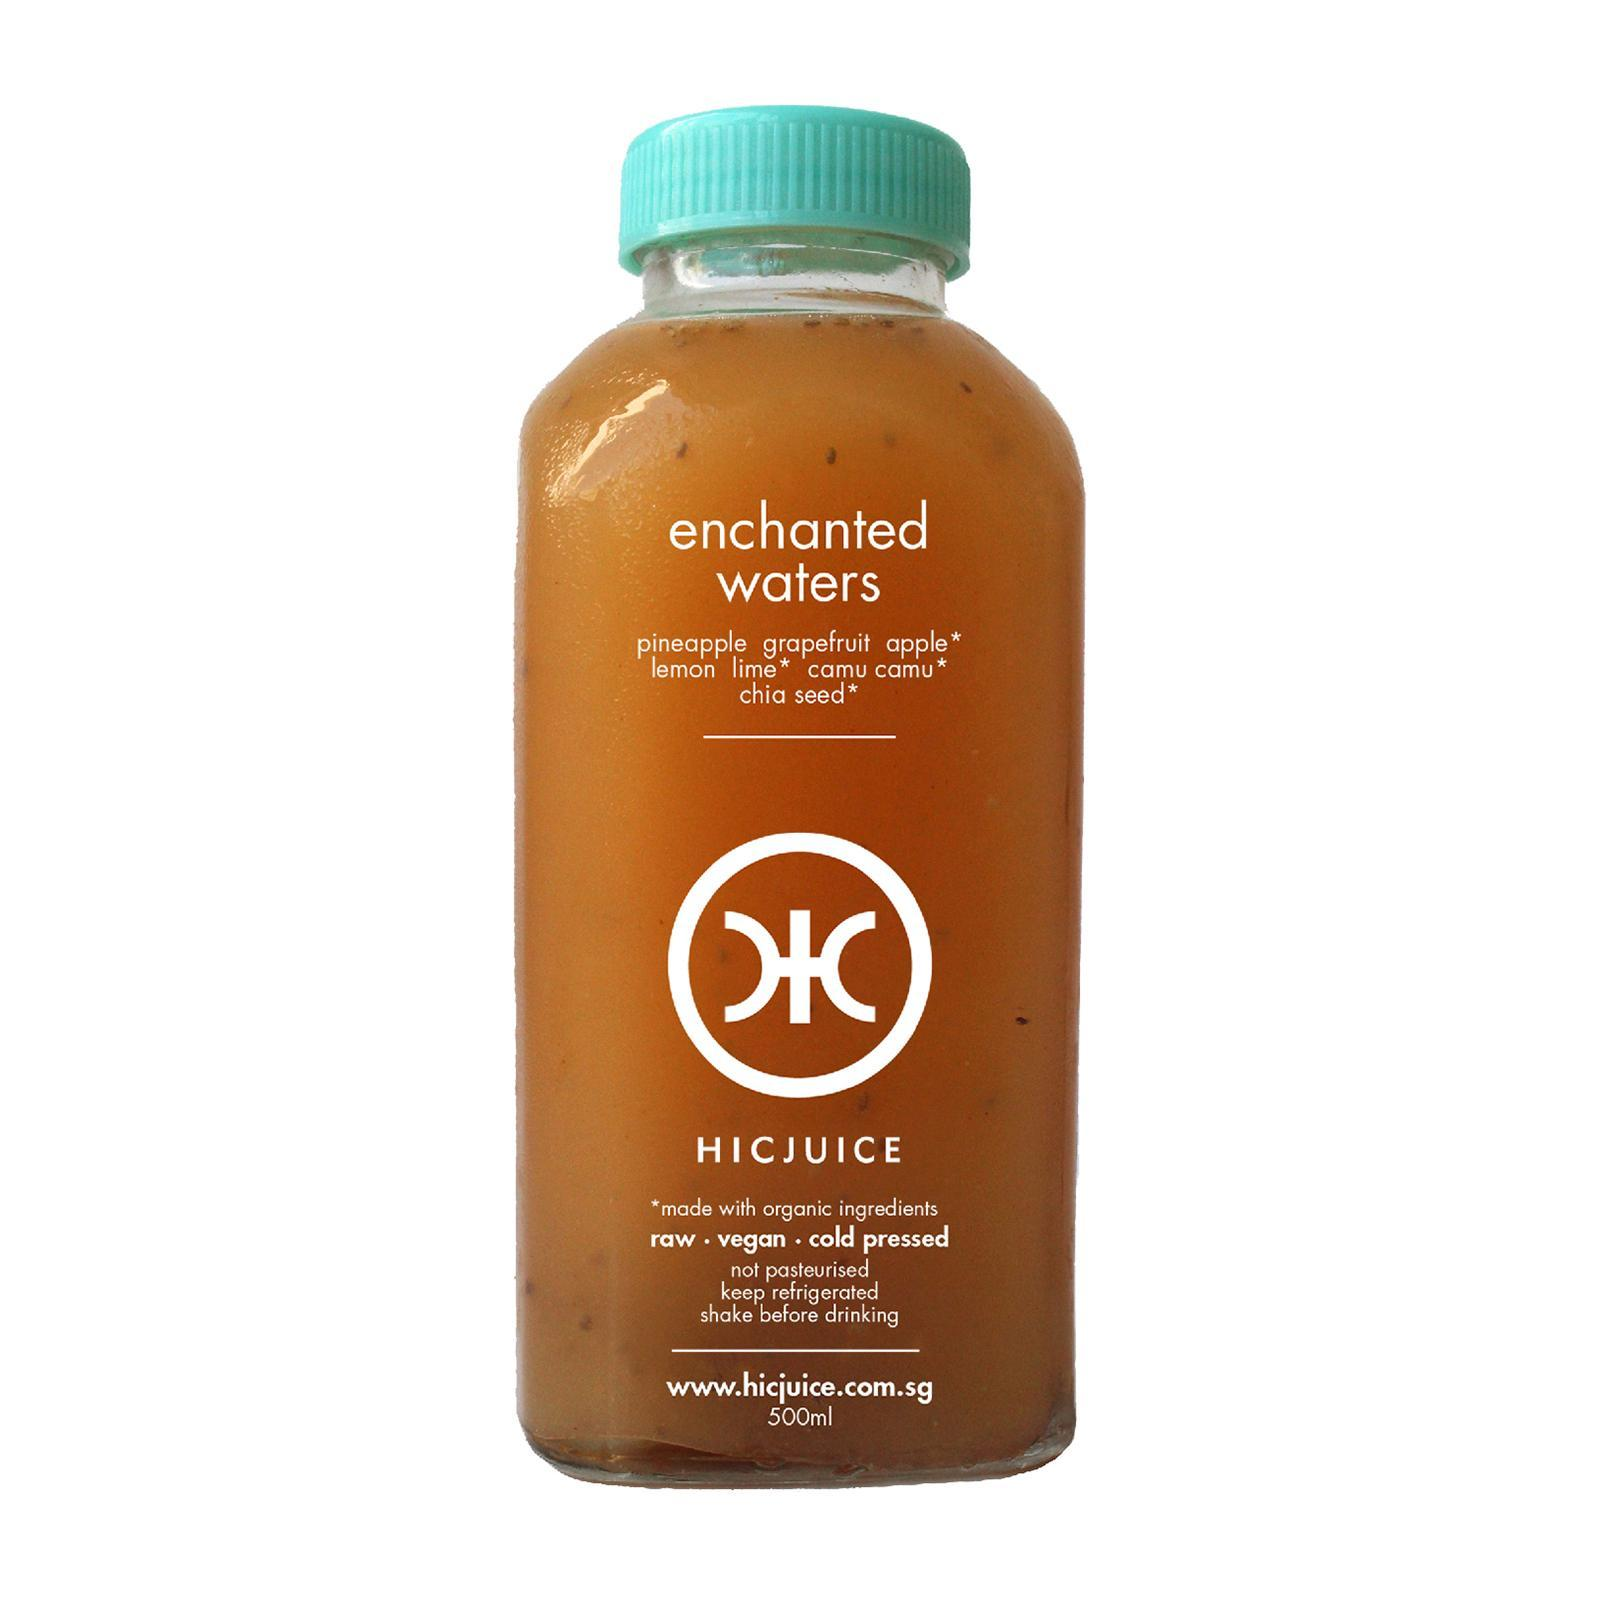 HICJUICE Enchanted Waters Cold Pressed Juice